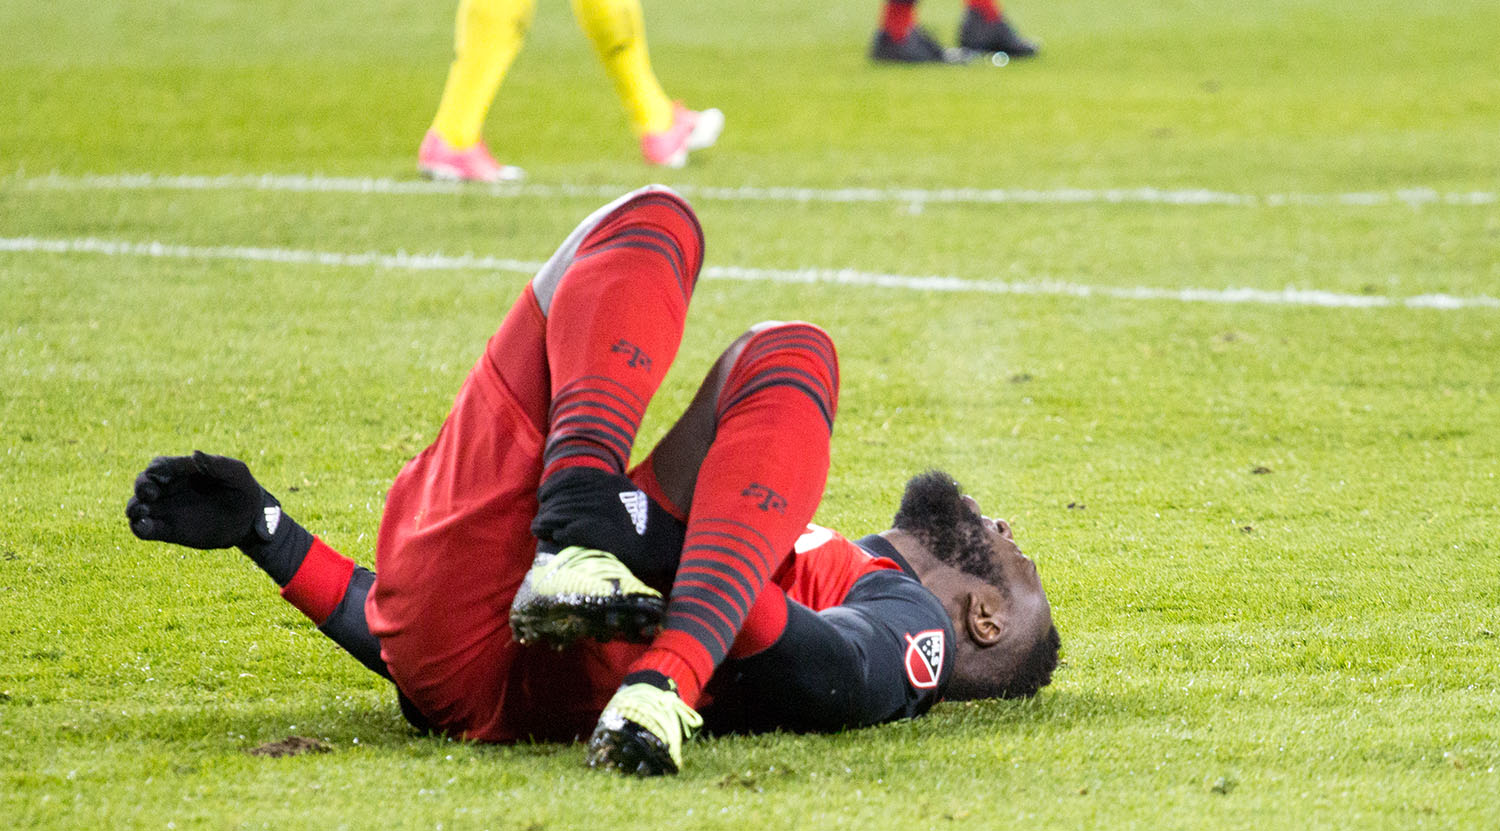 Jozy Altidore in pain on the ground due to an ankle injury. He would stay on to score the series deciding goal.Image by Dennis Marciniak of denMAR Media.